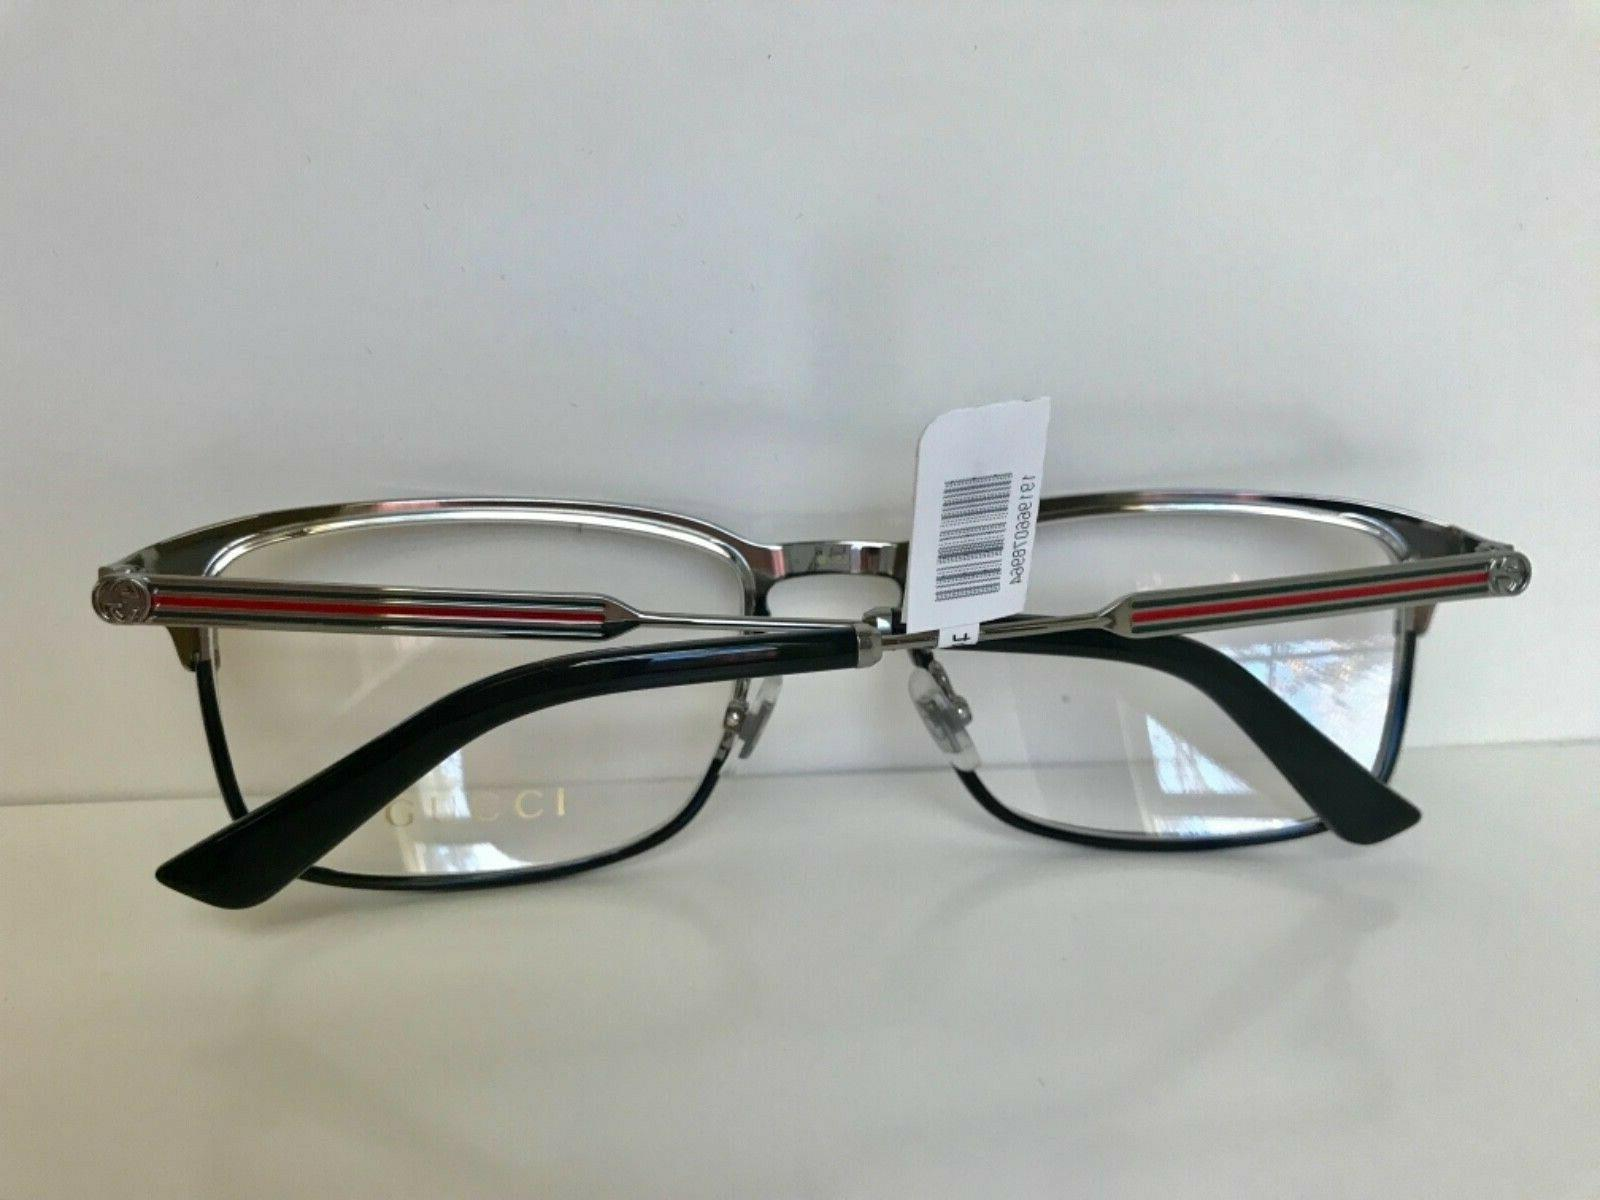 NEW GUCCI 006 SILVER EYEGLASSES FRAMES w/ WEB ARMS